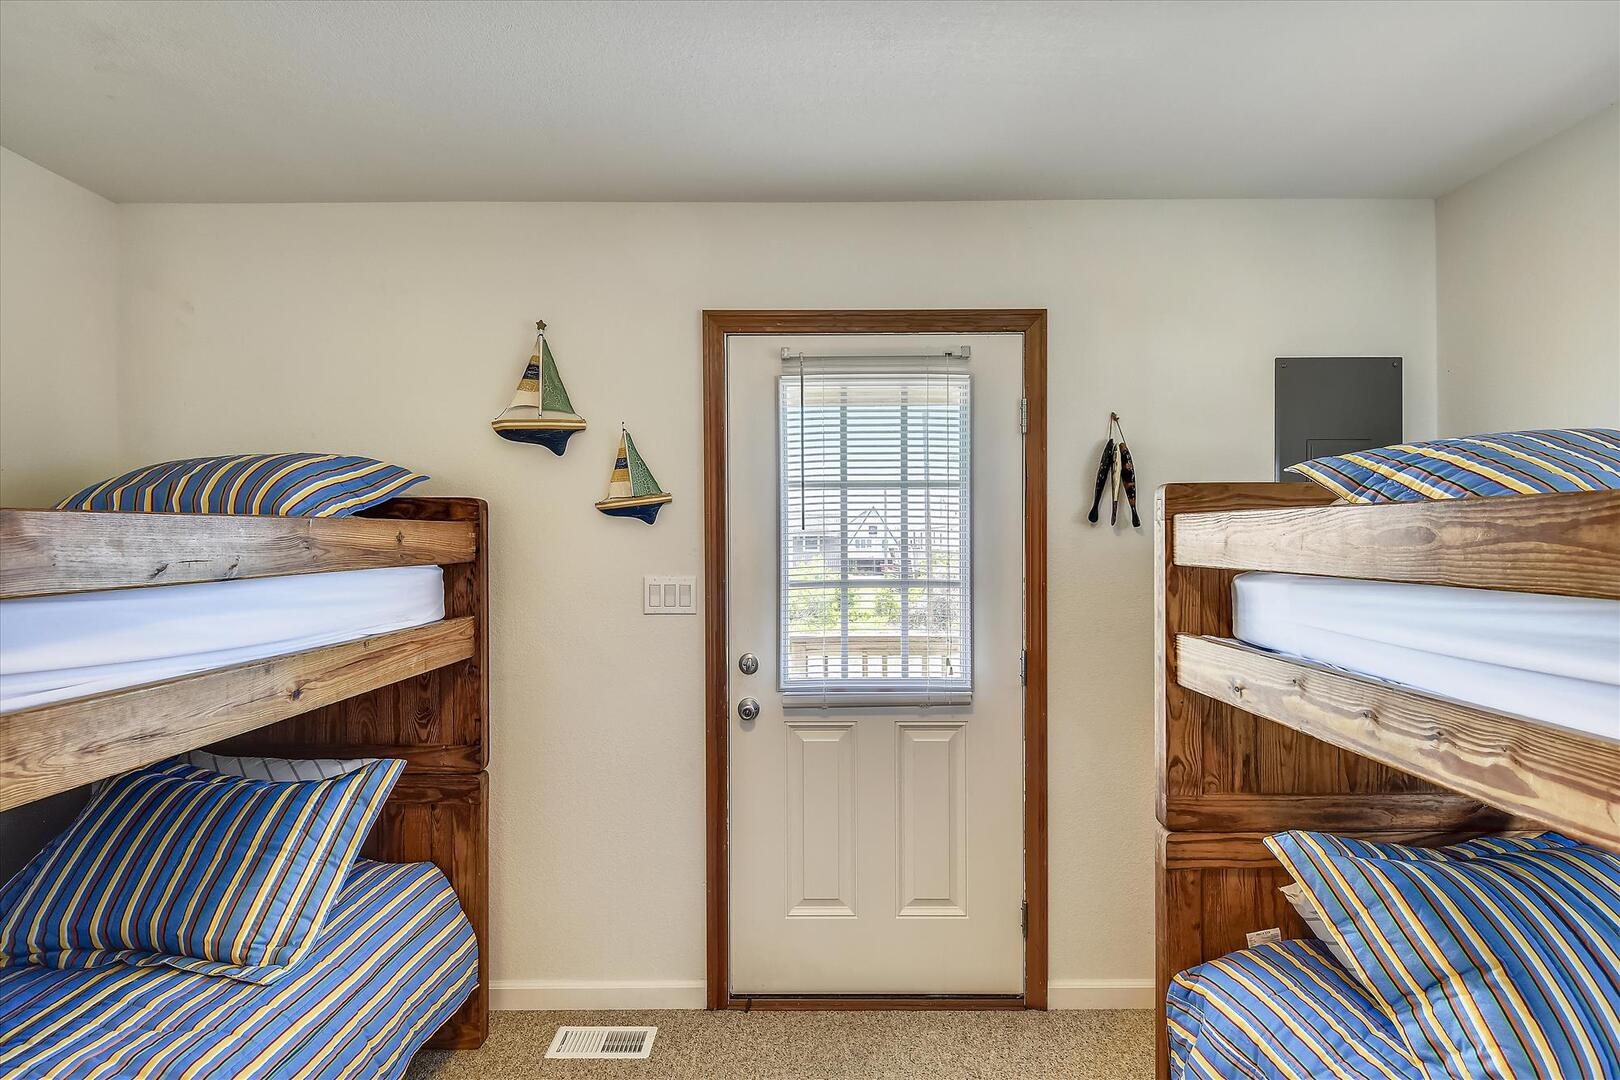 Entry/Middle Level,Bedroom,